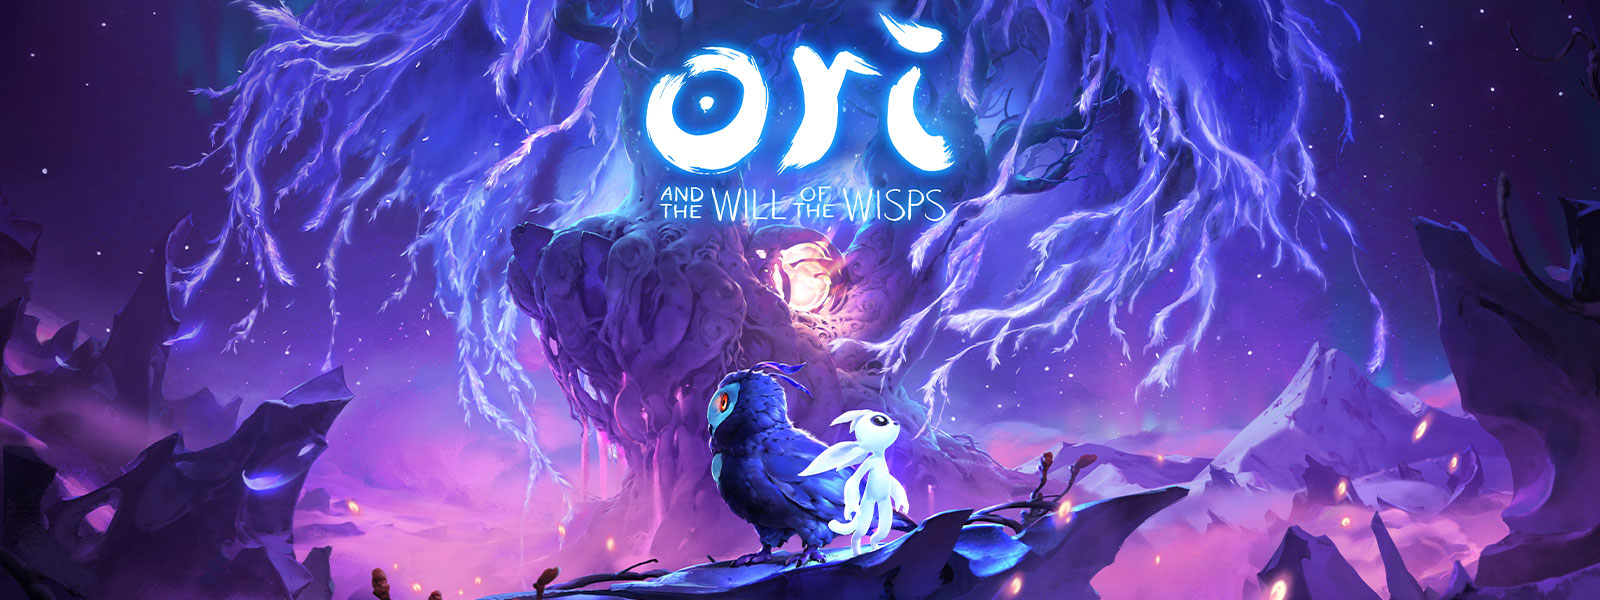 Ori and the Will of the Wisps, Ori se para junto a una lechuza frente a un árbol violeta fantástico